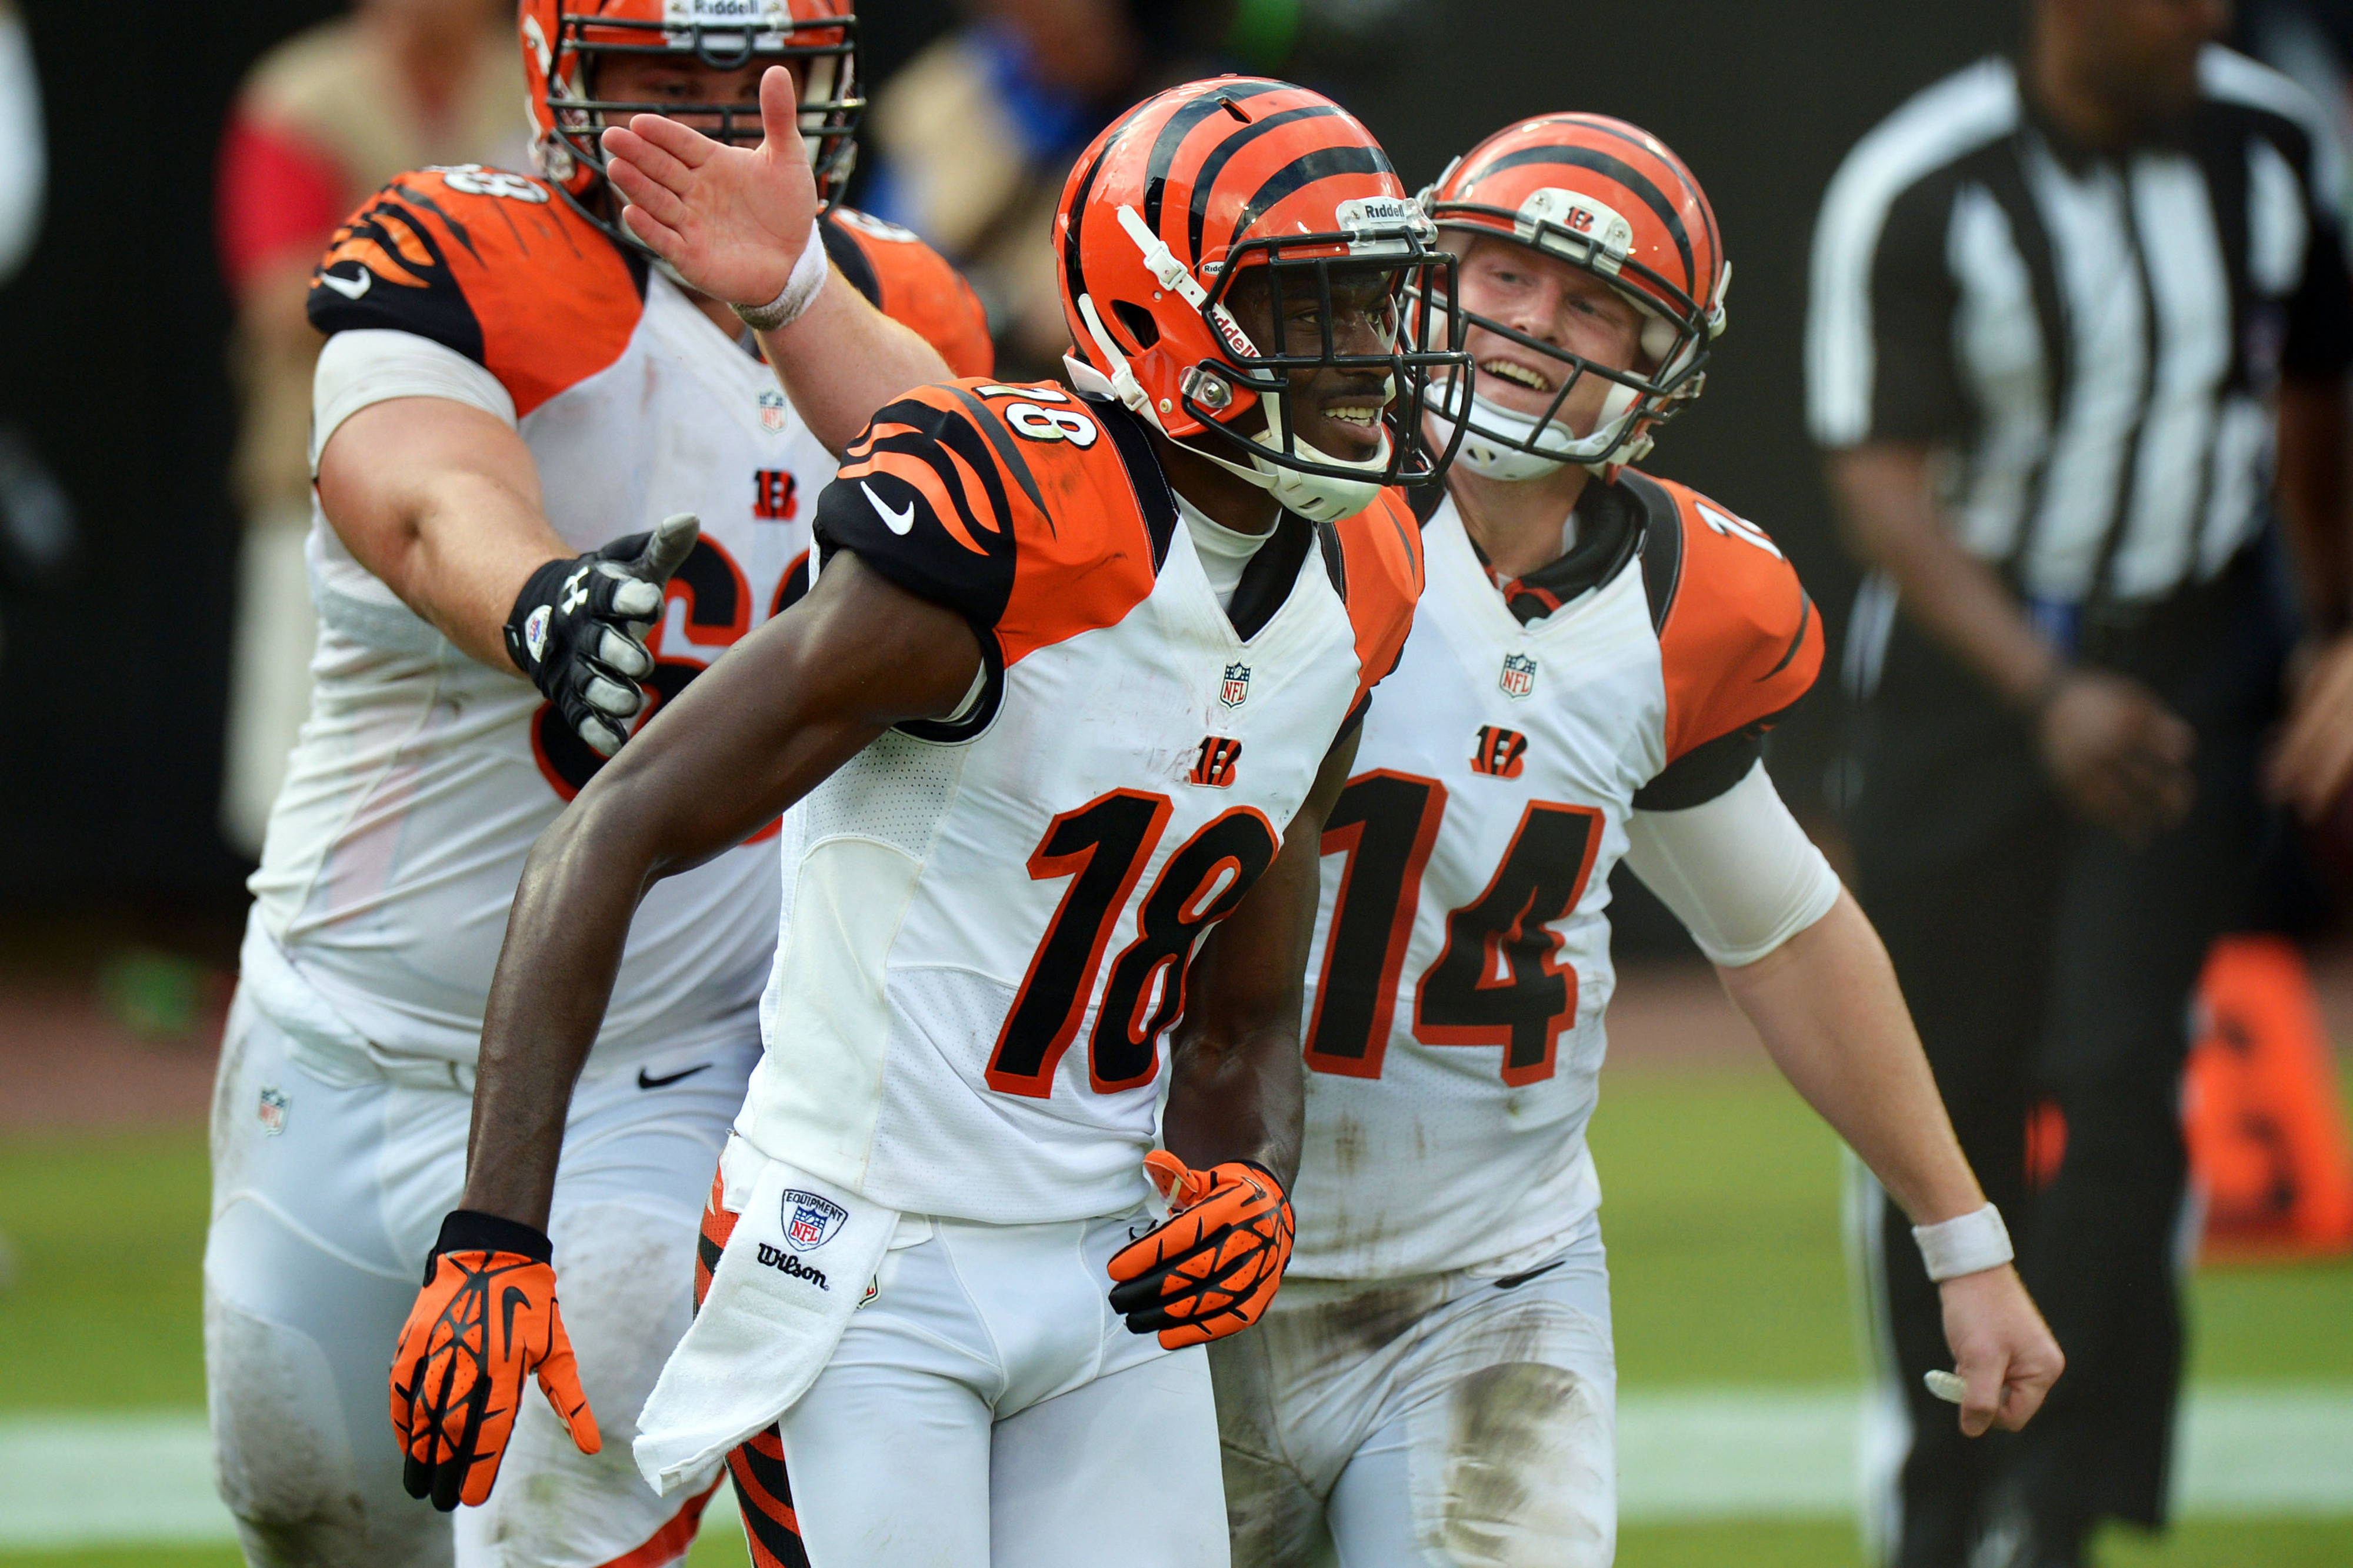 Andy Dalton and A.J. Green are going to be a very difficult tandem for the Cowboys to take down.